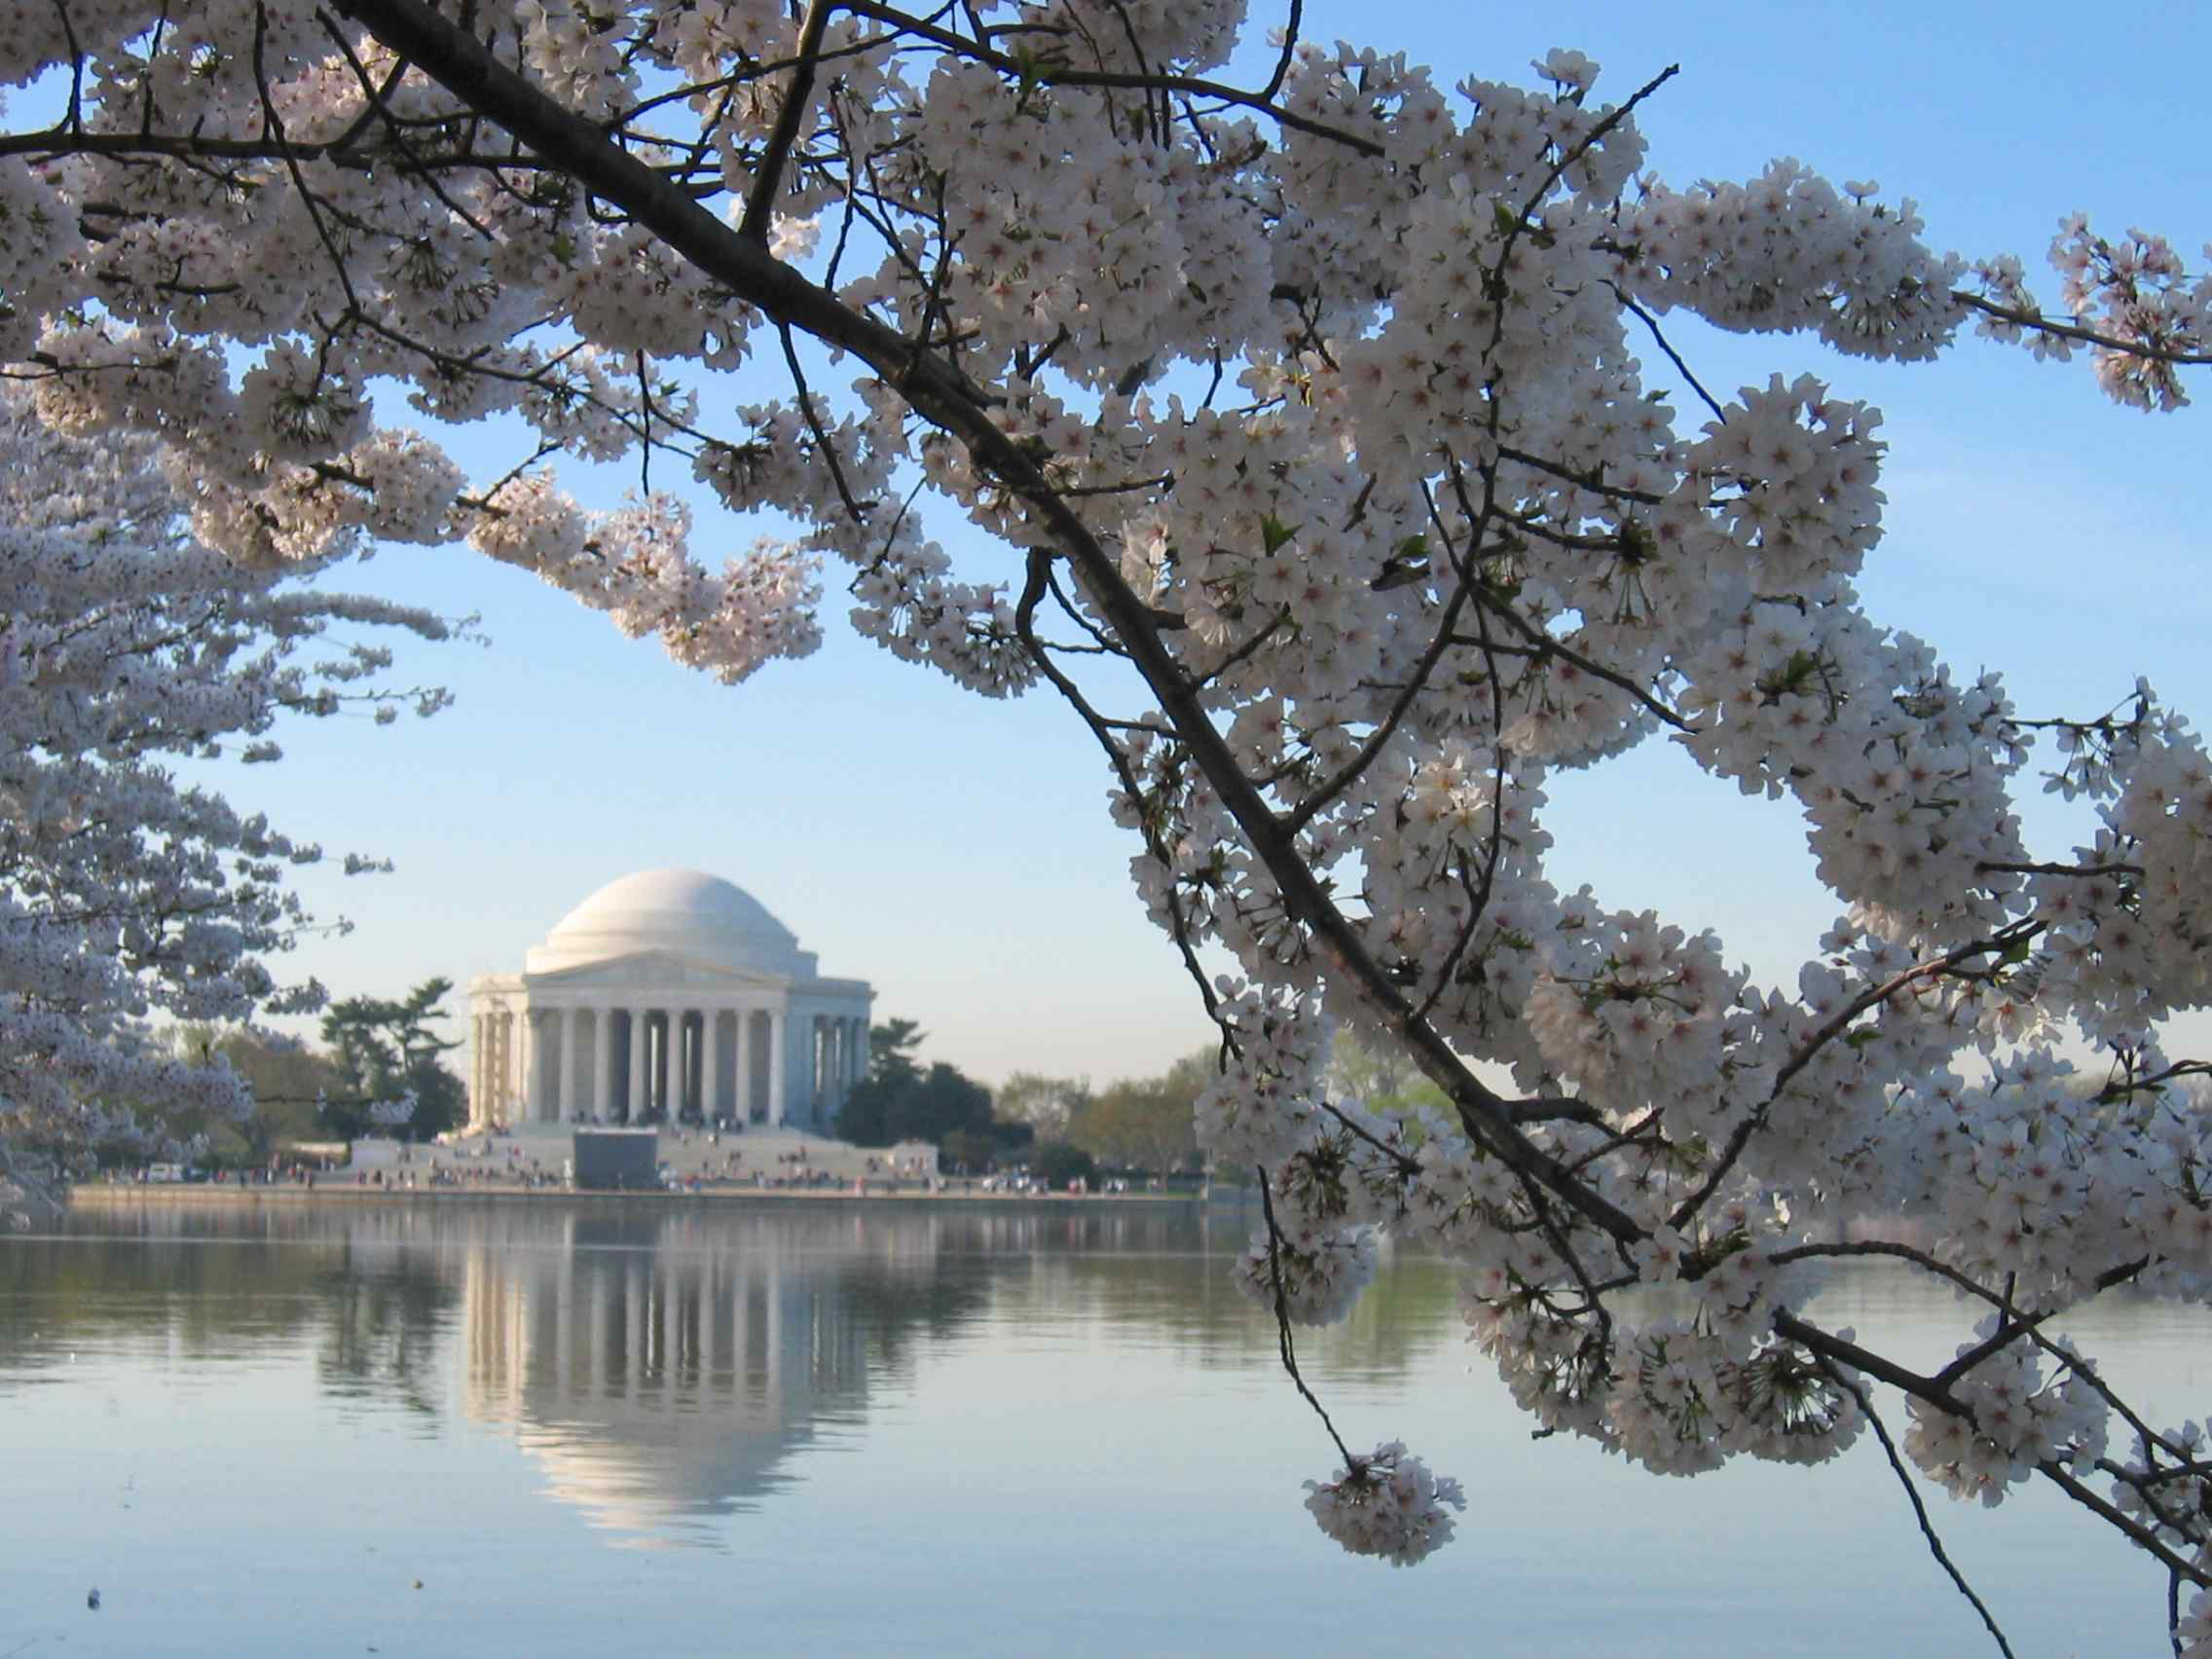 jefferson-memorial-at-cherry-blossom-time.JPG